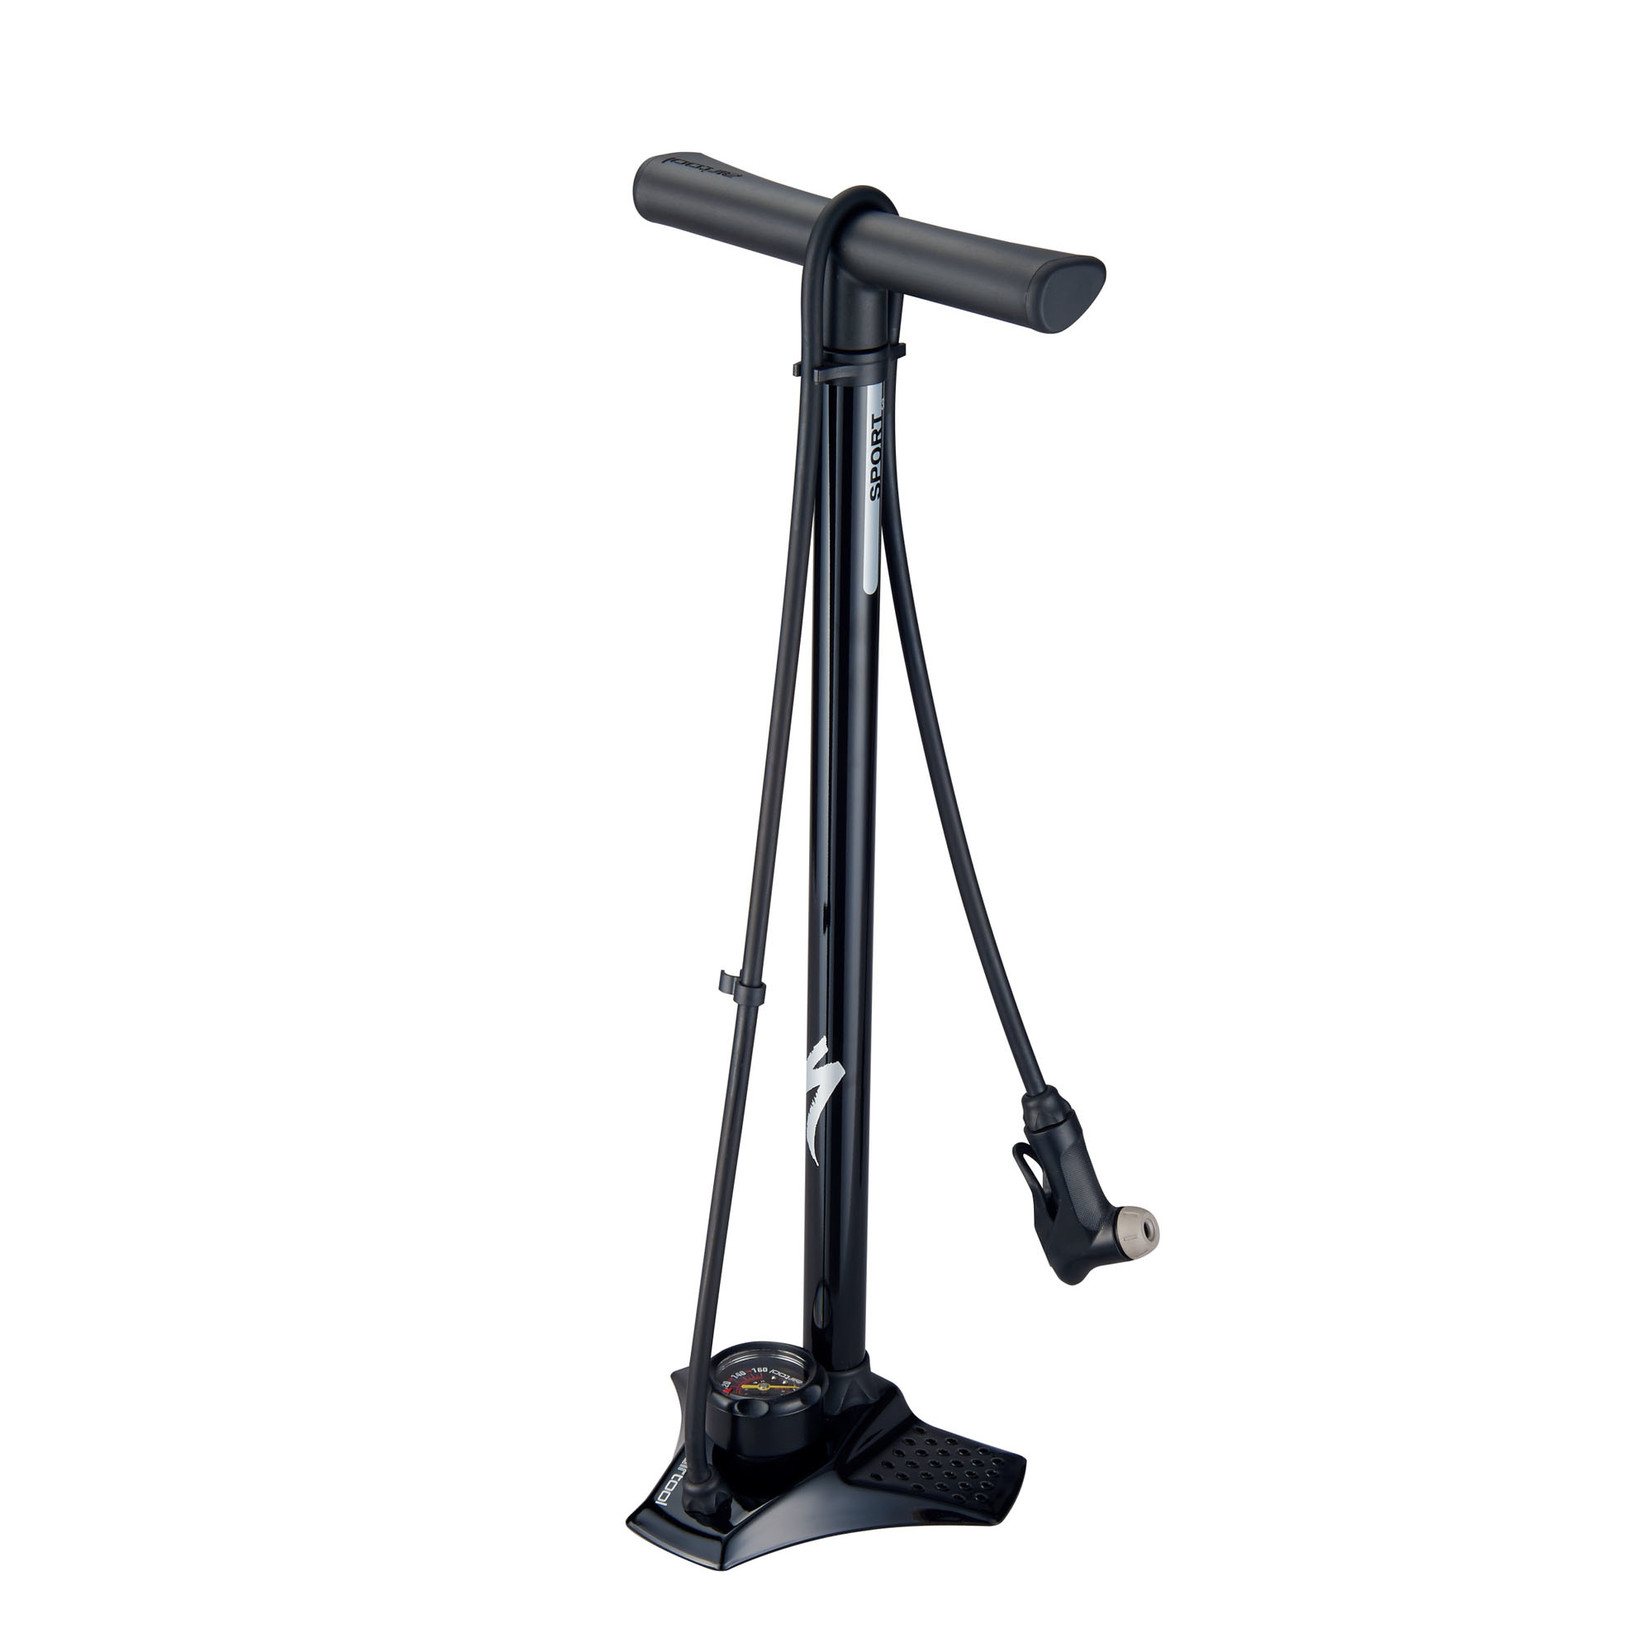 Specialized Air Tool Sport Floor Pump